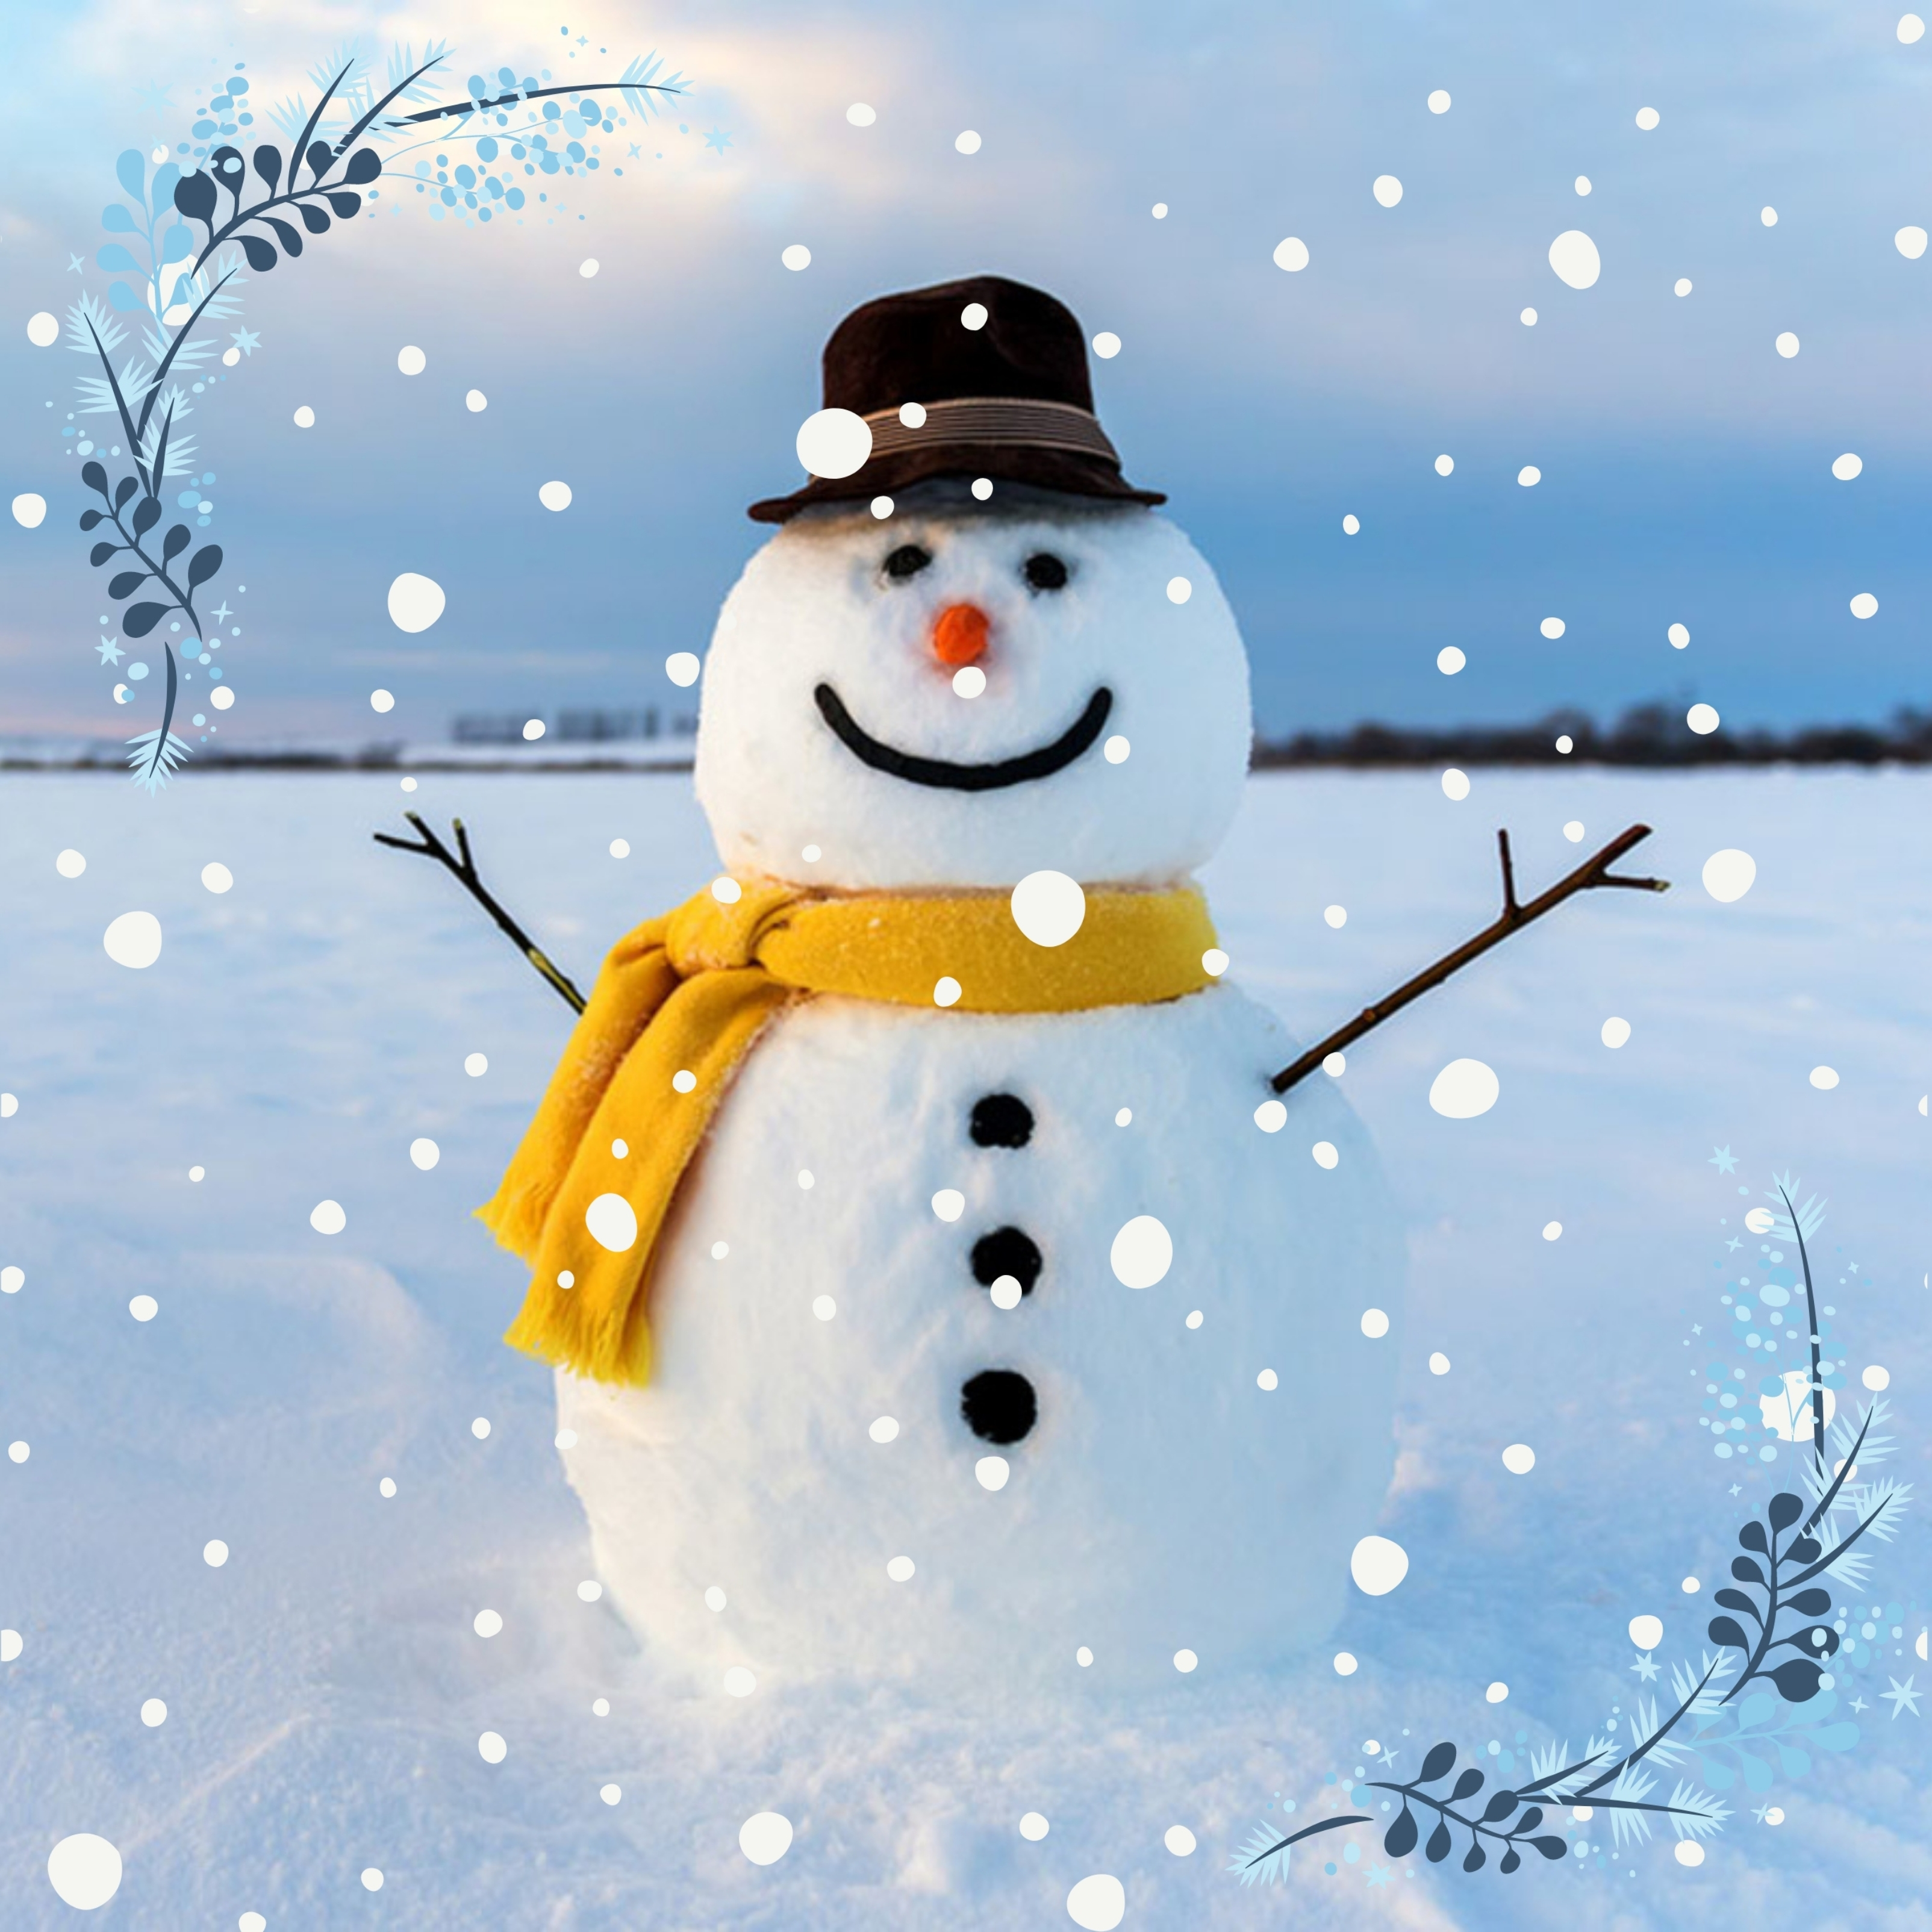 Snowman Winter Ipad Wallpaper